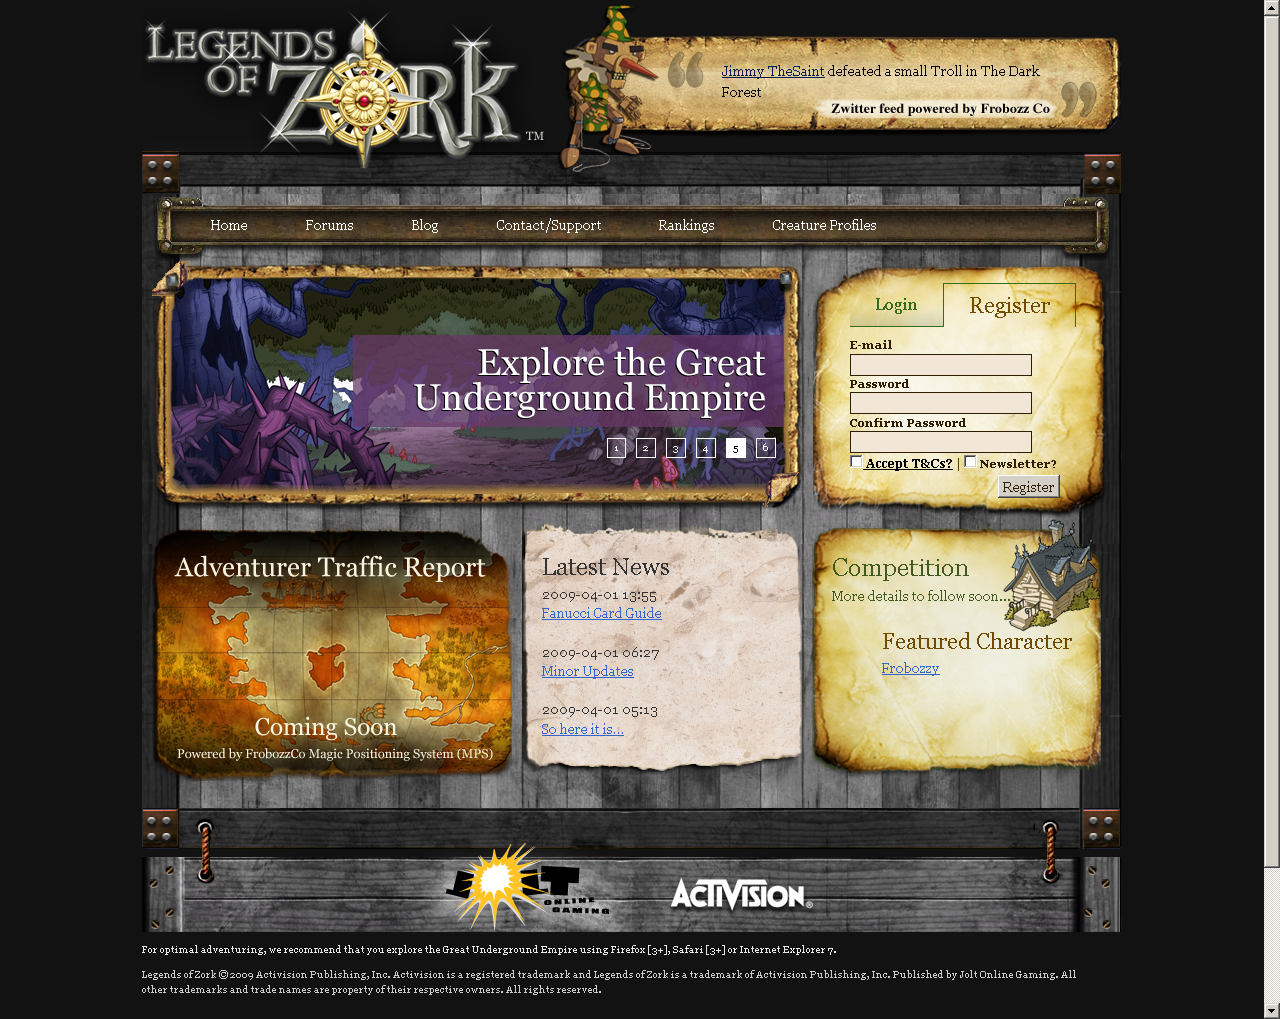 Legends of Zork Browser Start screen